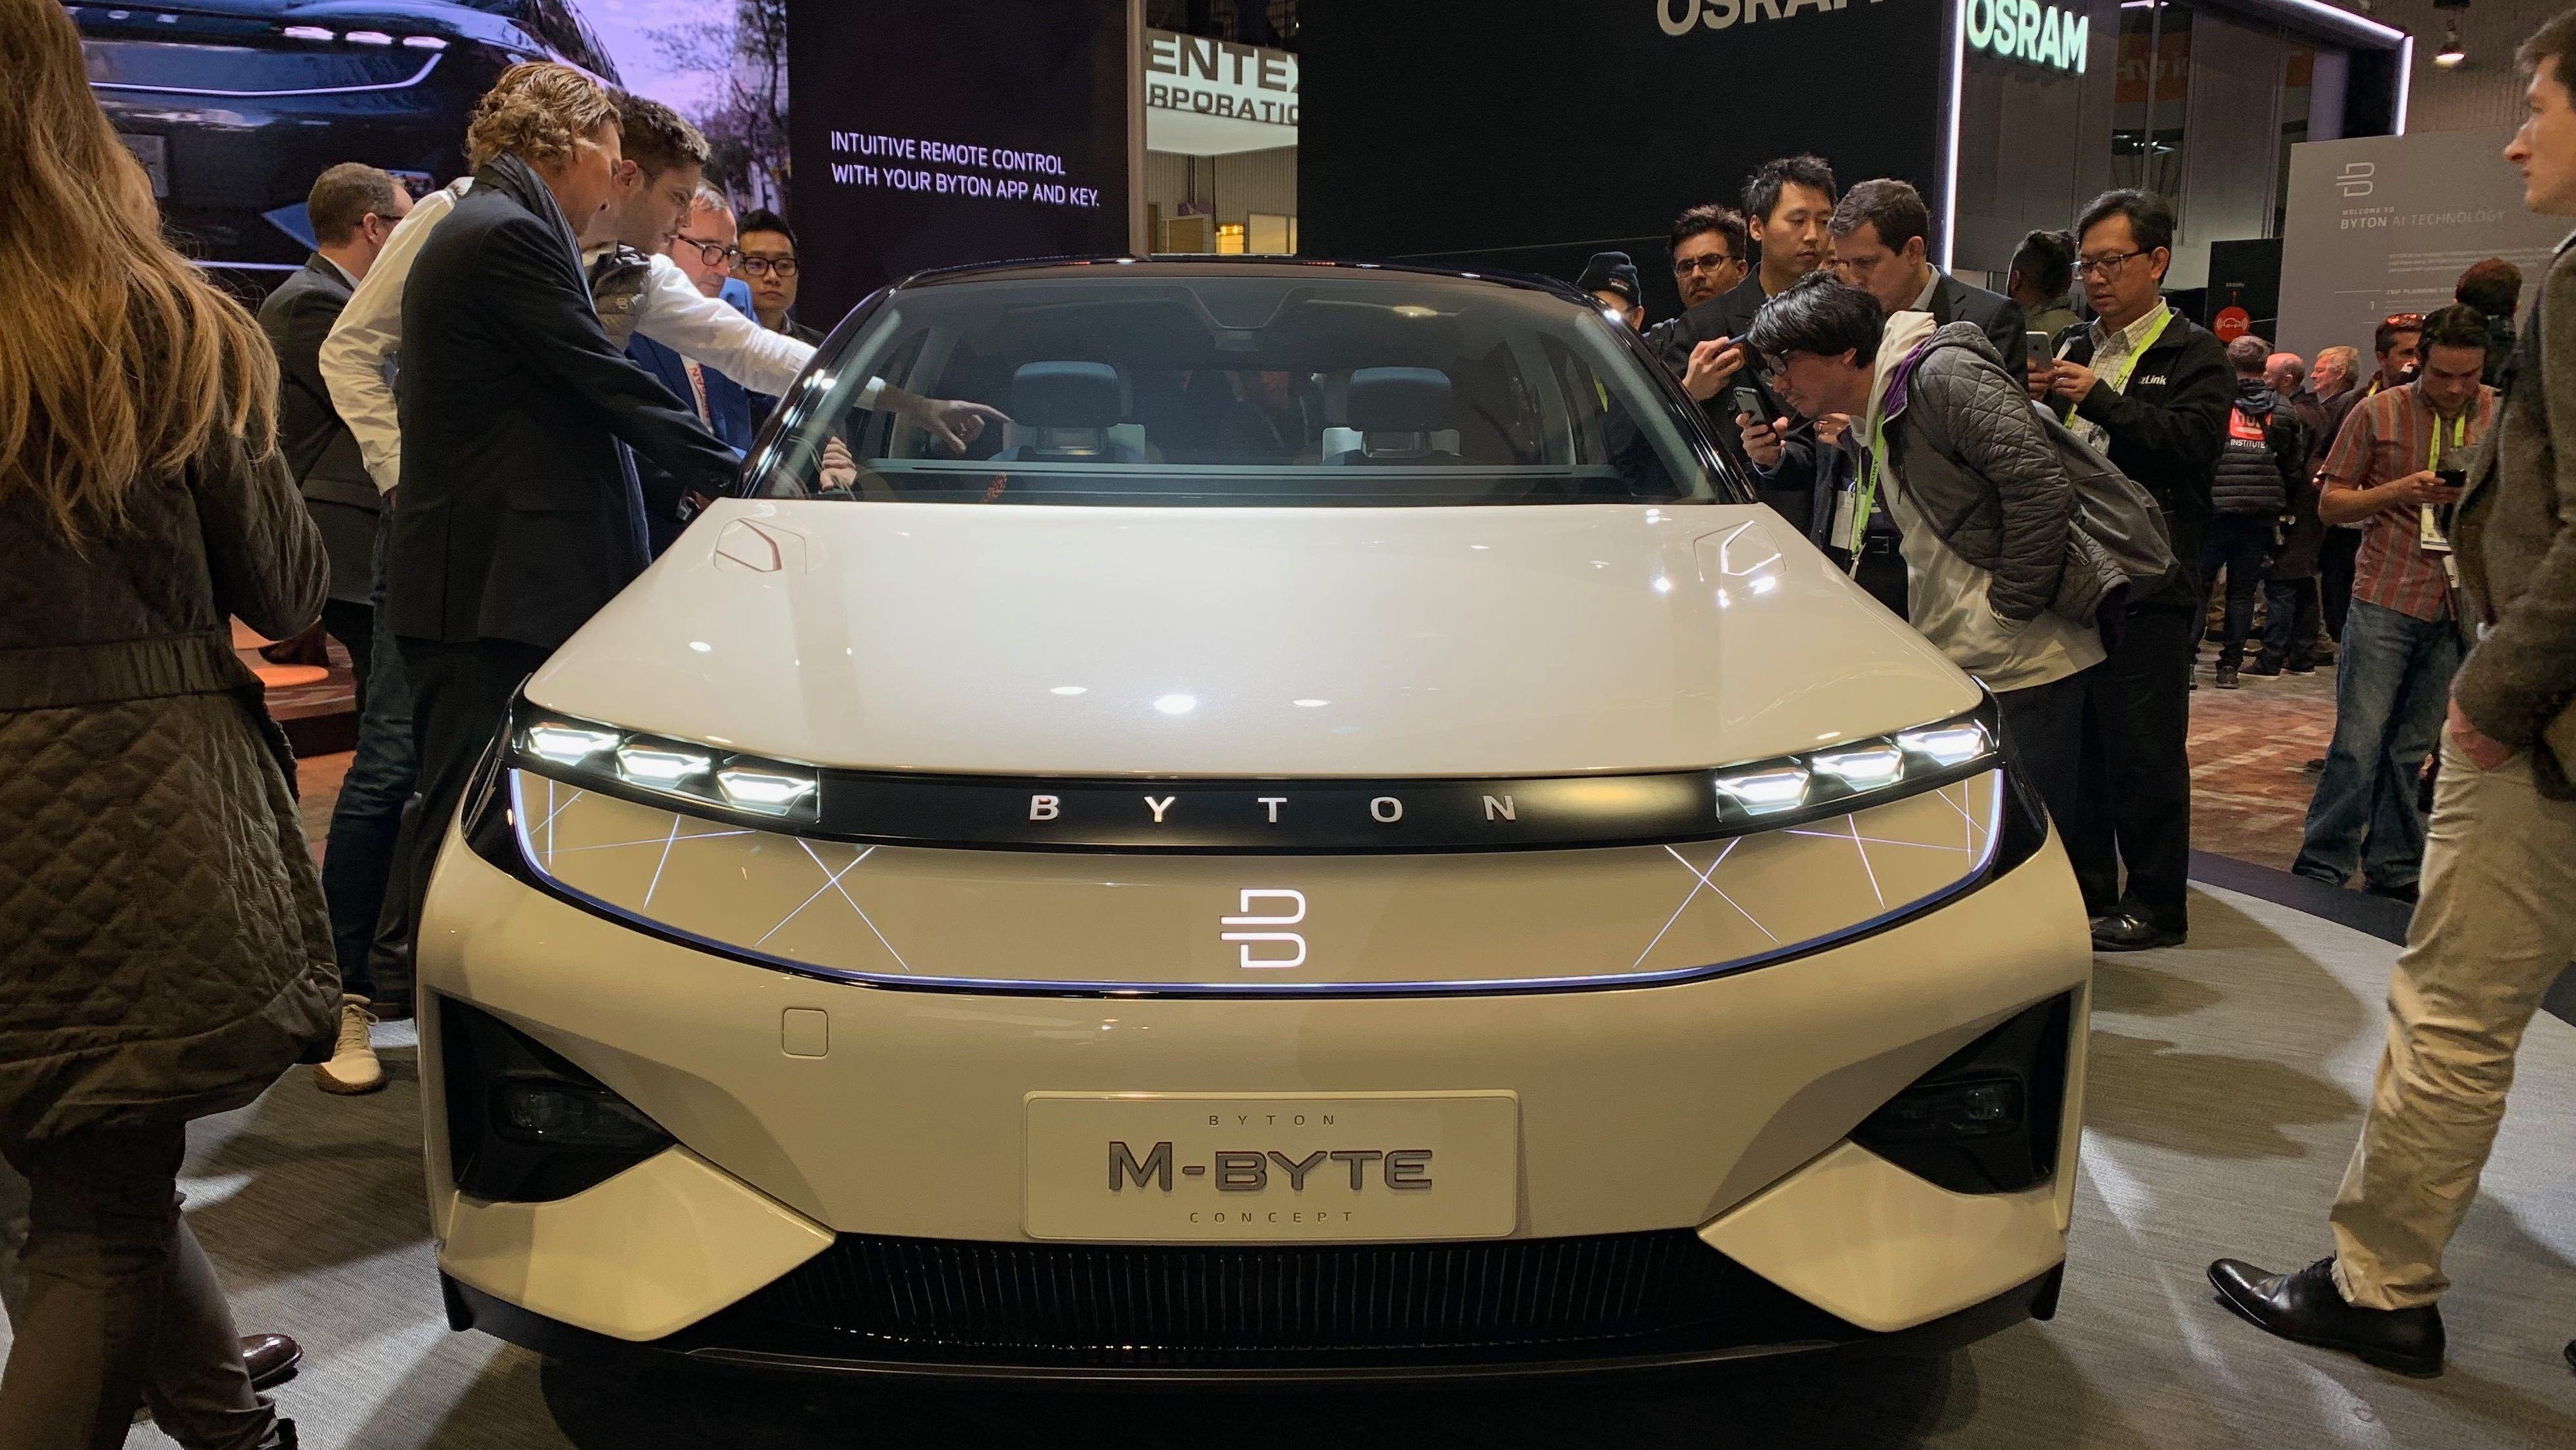 Byton's M-byte at the CES show.